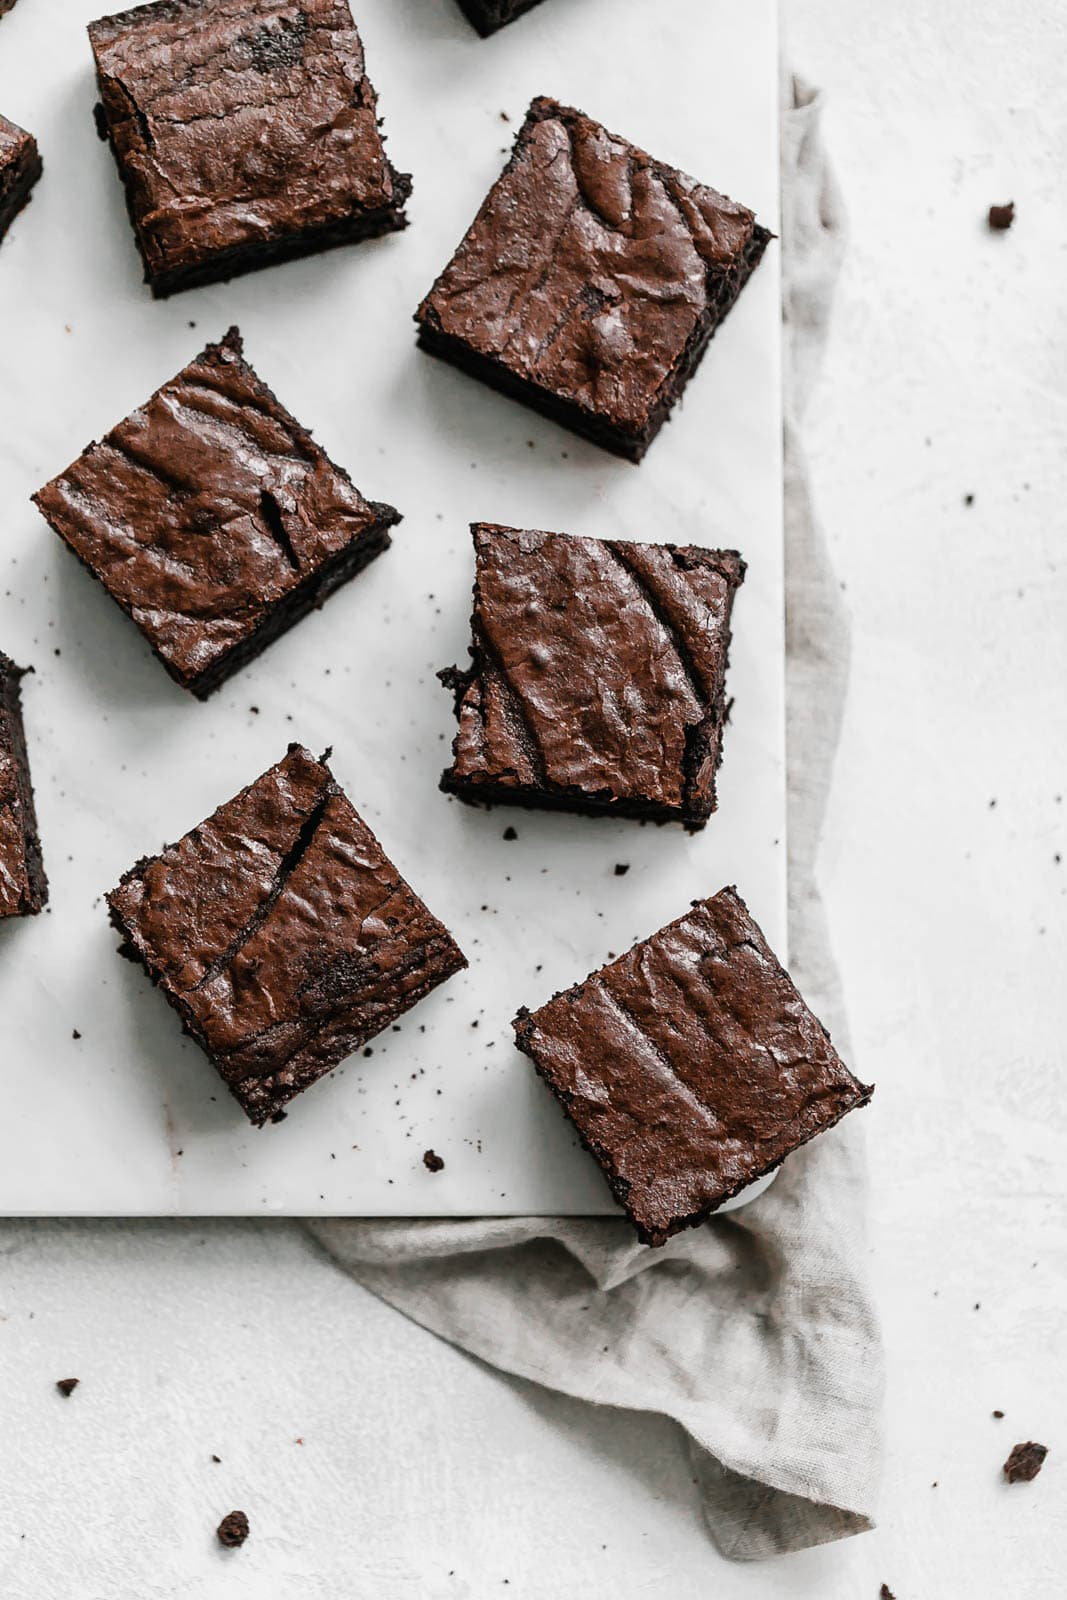 Secret Ingredient Bakery Style Fudge Brownies so rich and chewy you'd swear they weren't homemade.